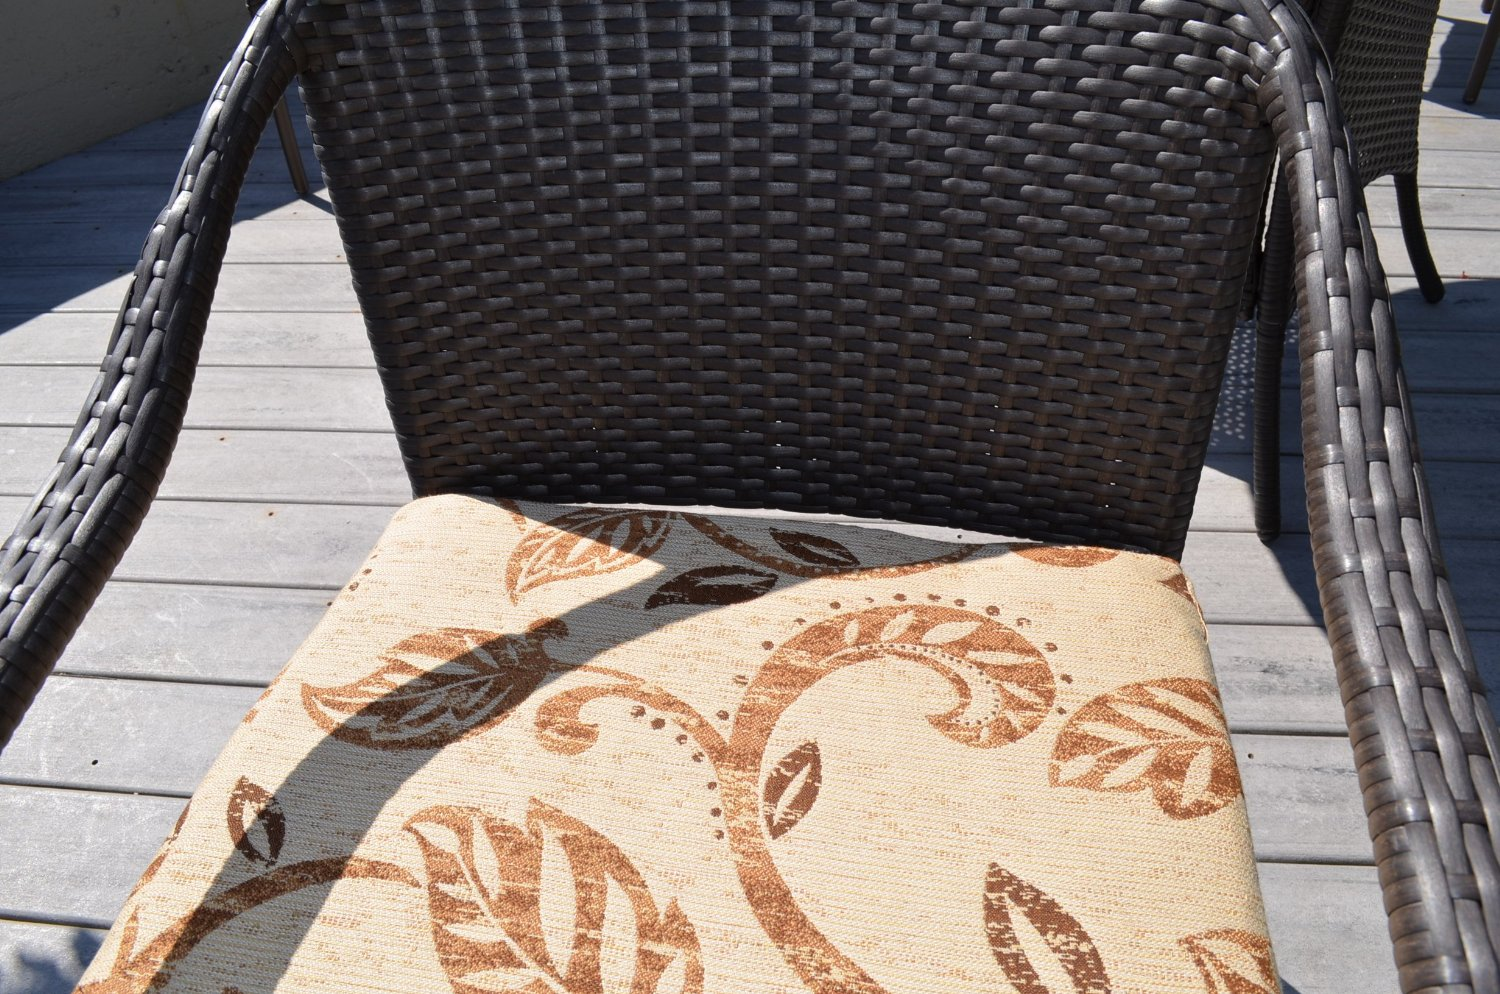 San_Marcos_5_Piece_All_Weather_Wicker_Patio_Dining_Set_4